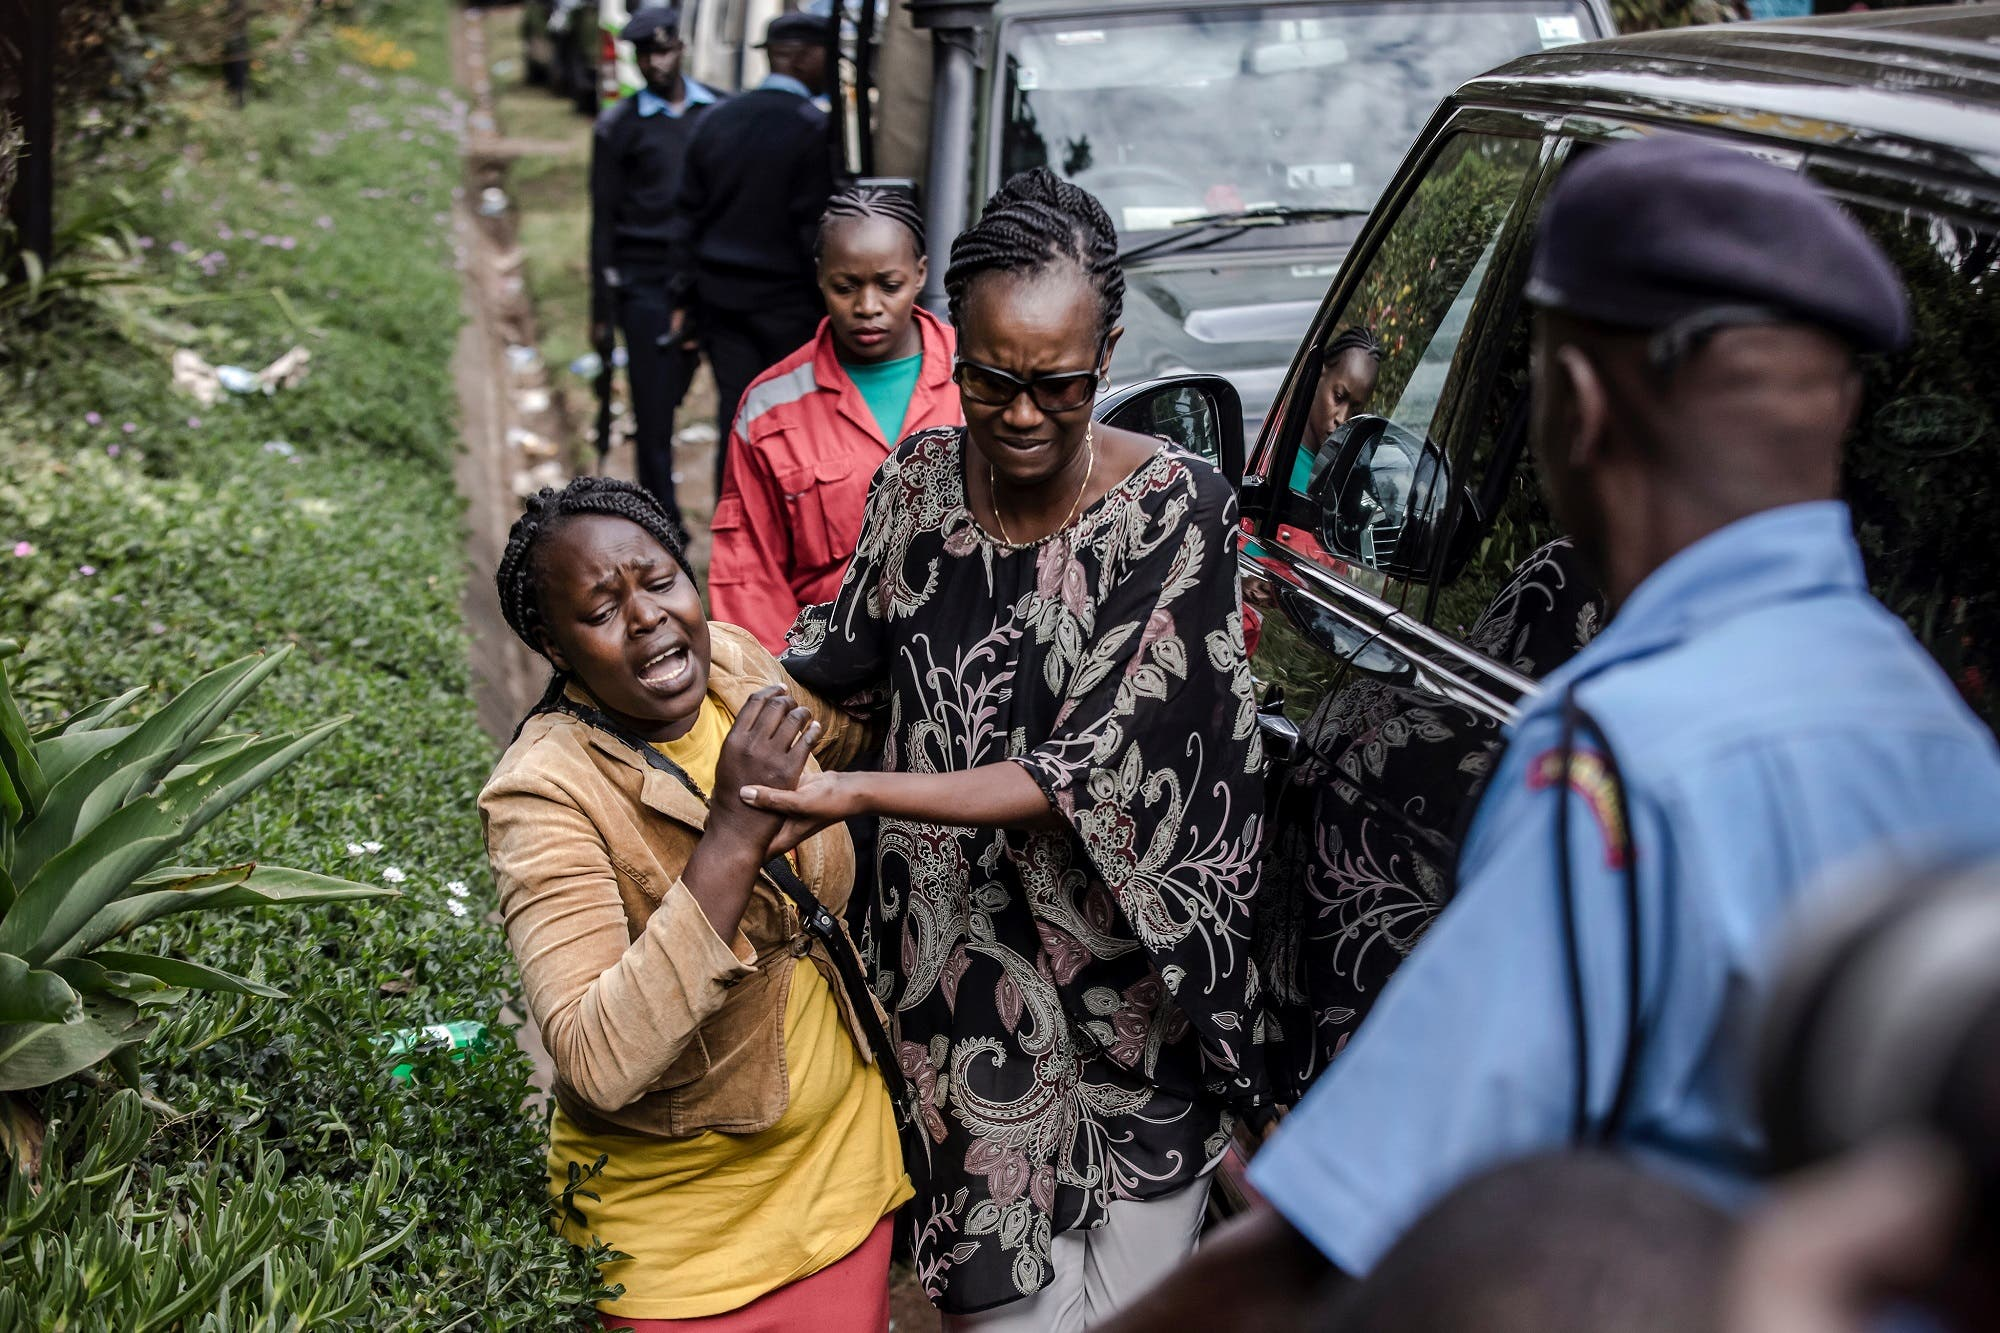 A woman is rescued at the scene of an on going terrorist attack at a hotel complex in Nairobi (AFP)